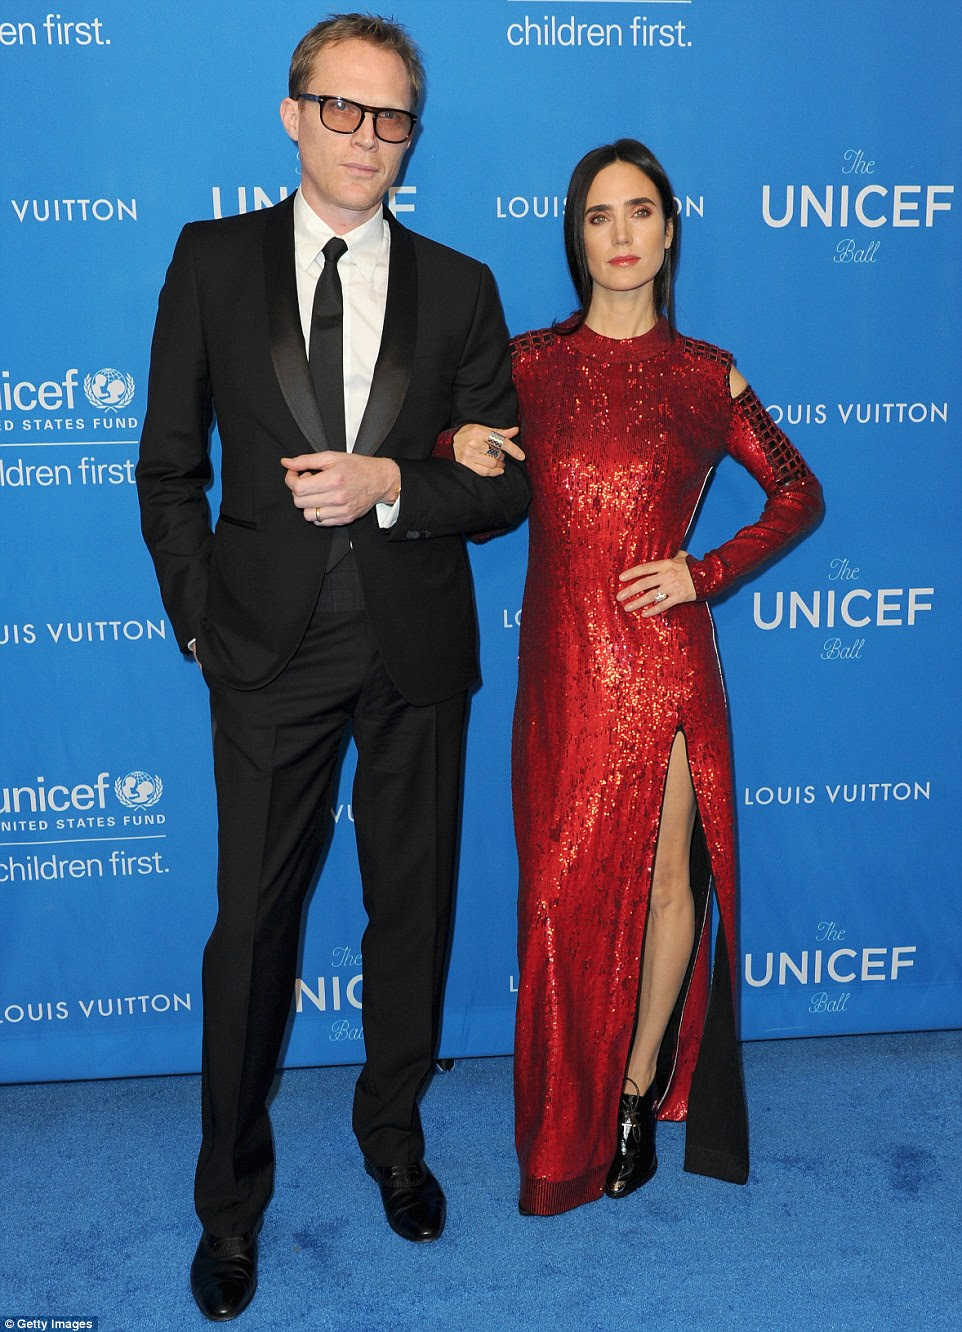 Cute couple: Jennifer Connelly, dressed in glittering red, was joined by husband Paul Bettany